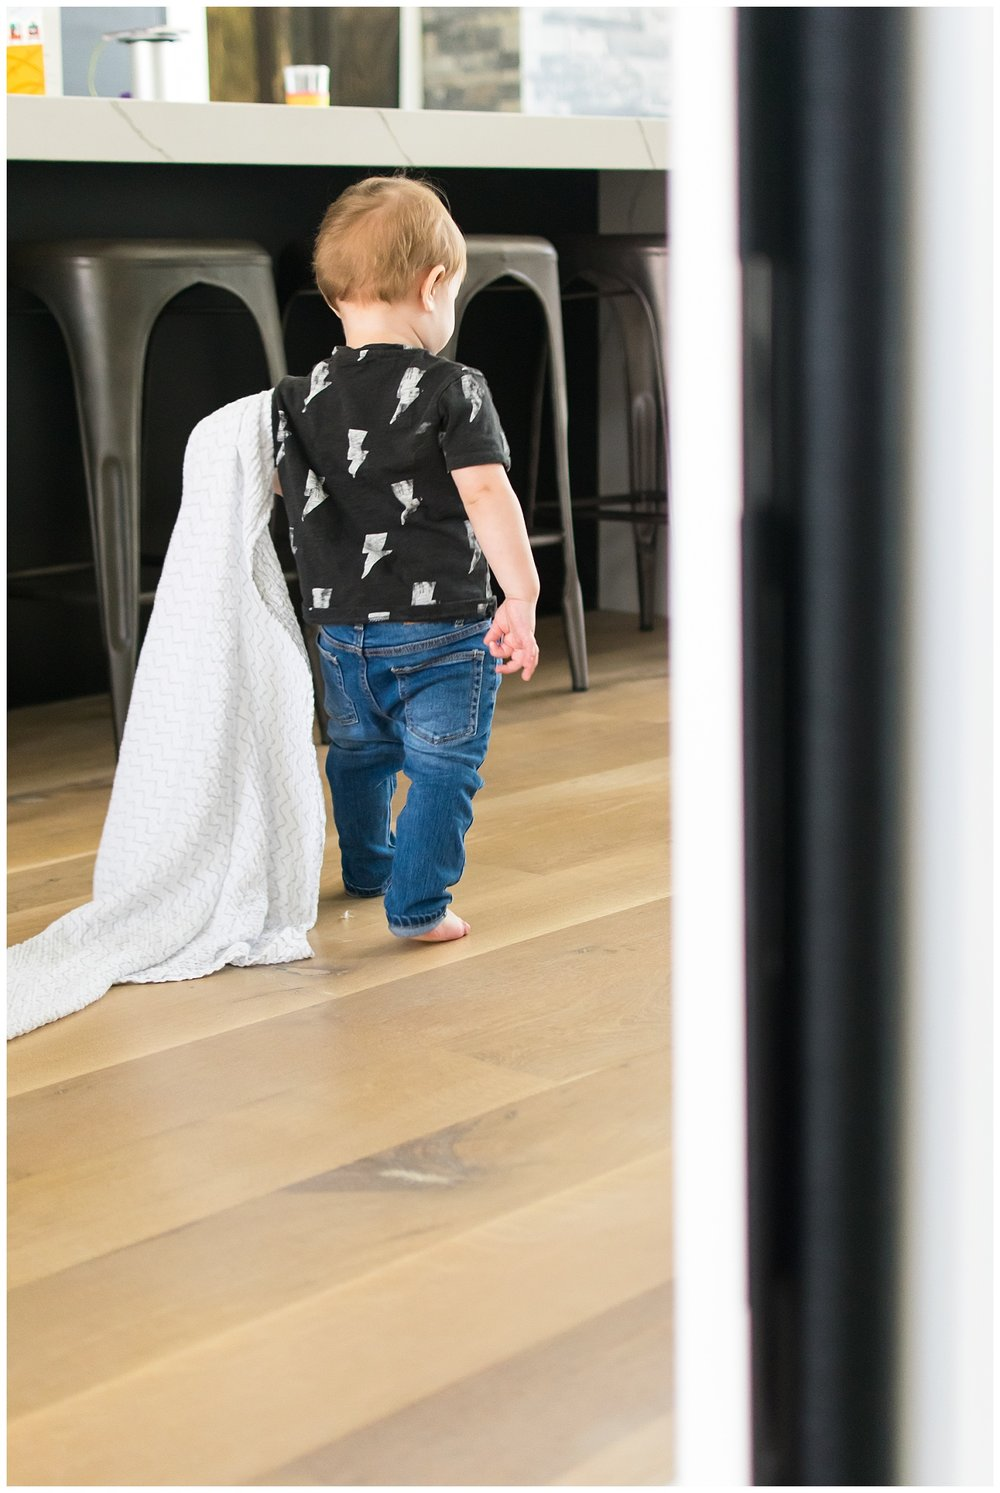 this is an image of a toddler boy walking and holding onto his blanket. the image was taken during an in home lifestyle session in atlanta georgia.